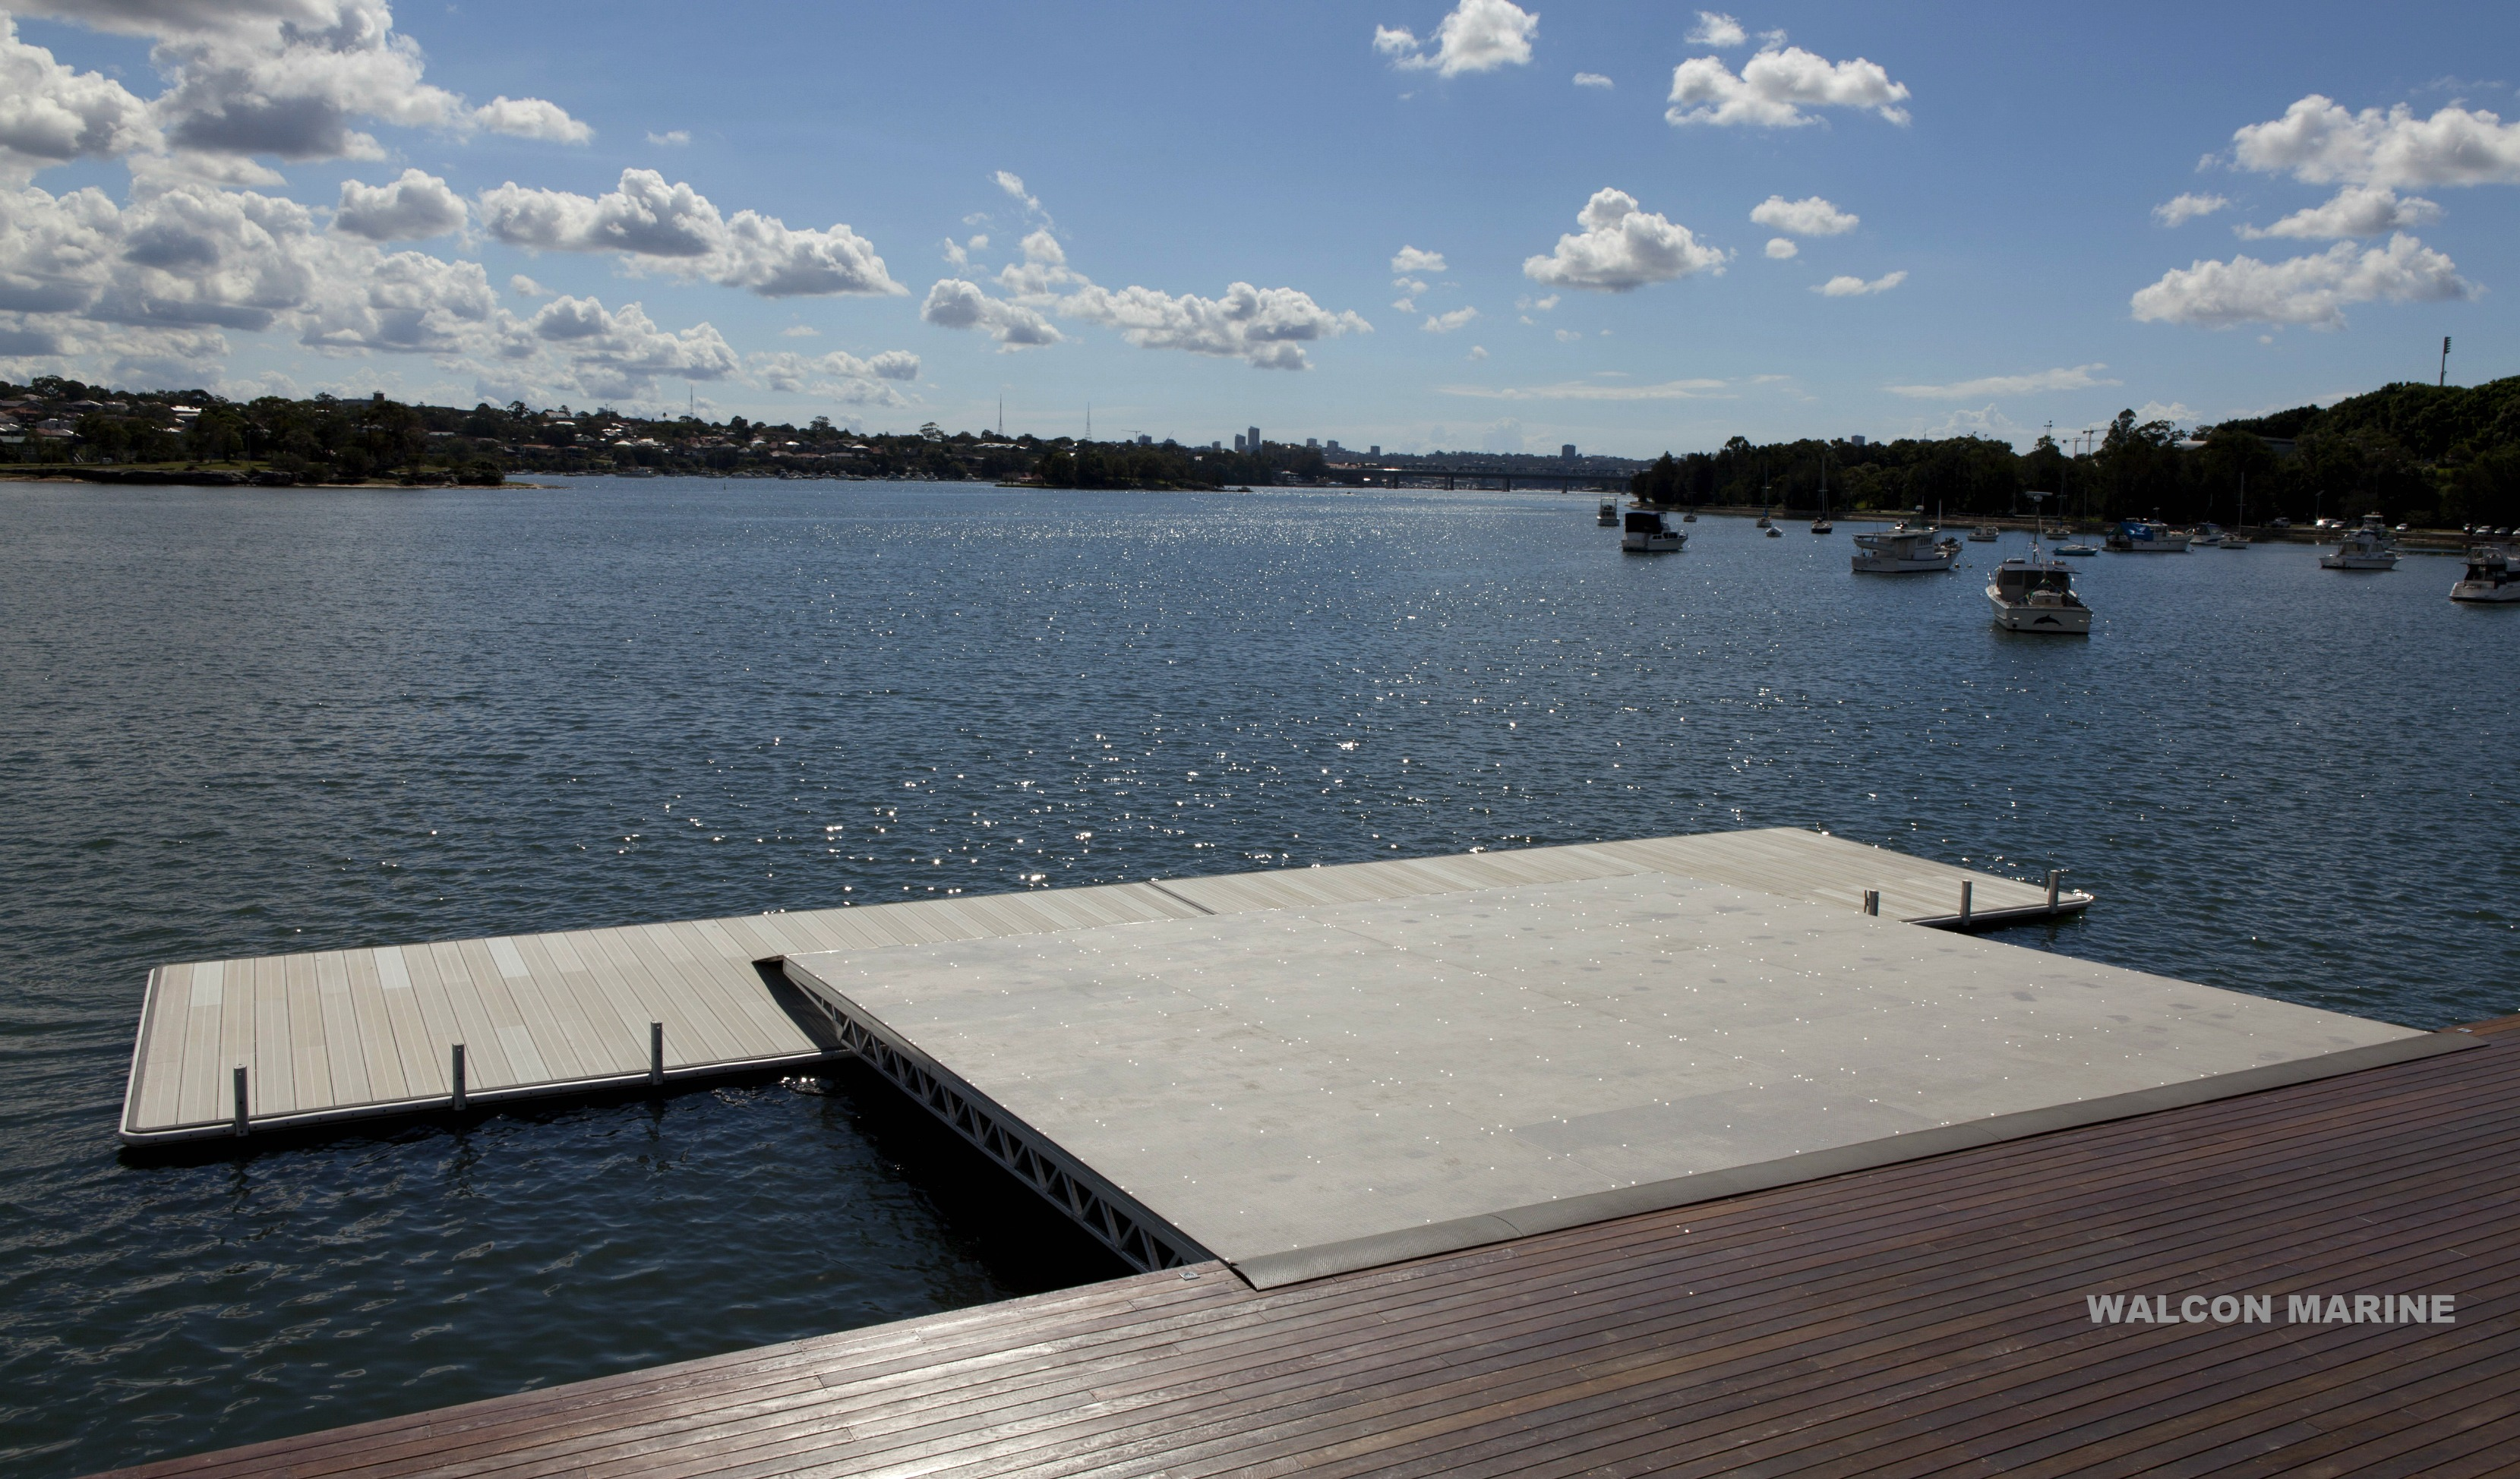 UTS Boat Ramp / Launching pontoon